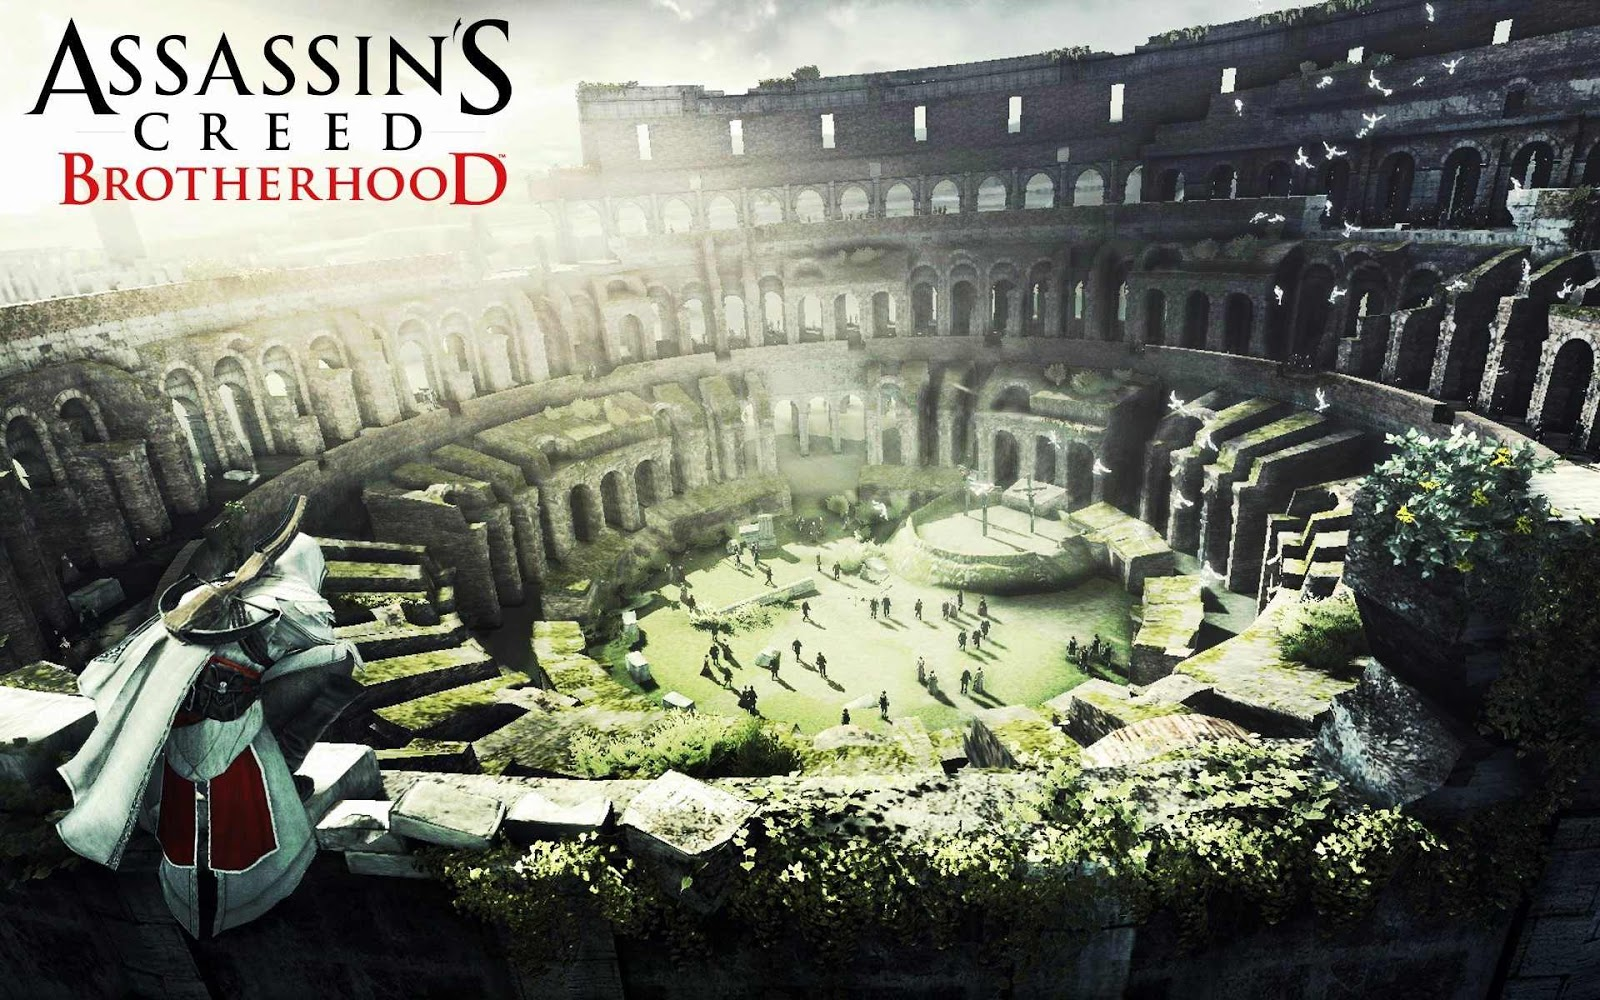 http://2.bp.blogspot.com/_sX3tCcZFGFE/TSayibWhYiI/AAAAAAAAASI/UbR26lNMGEM/s1600/assassins-creed-brotherhood-1.jpg